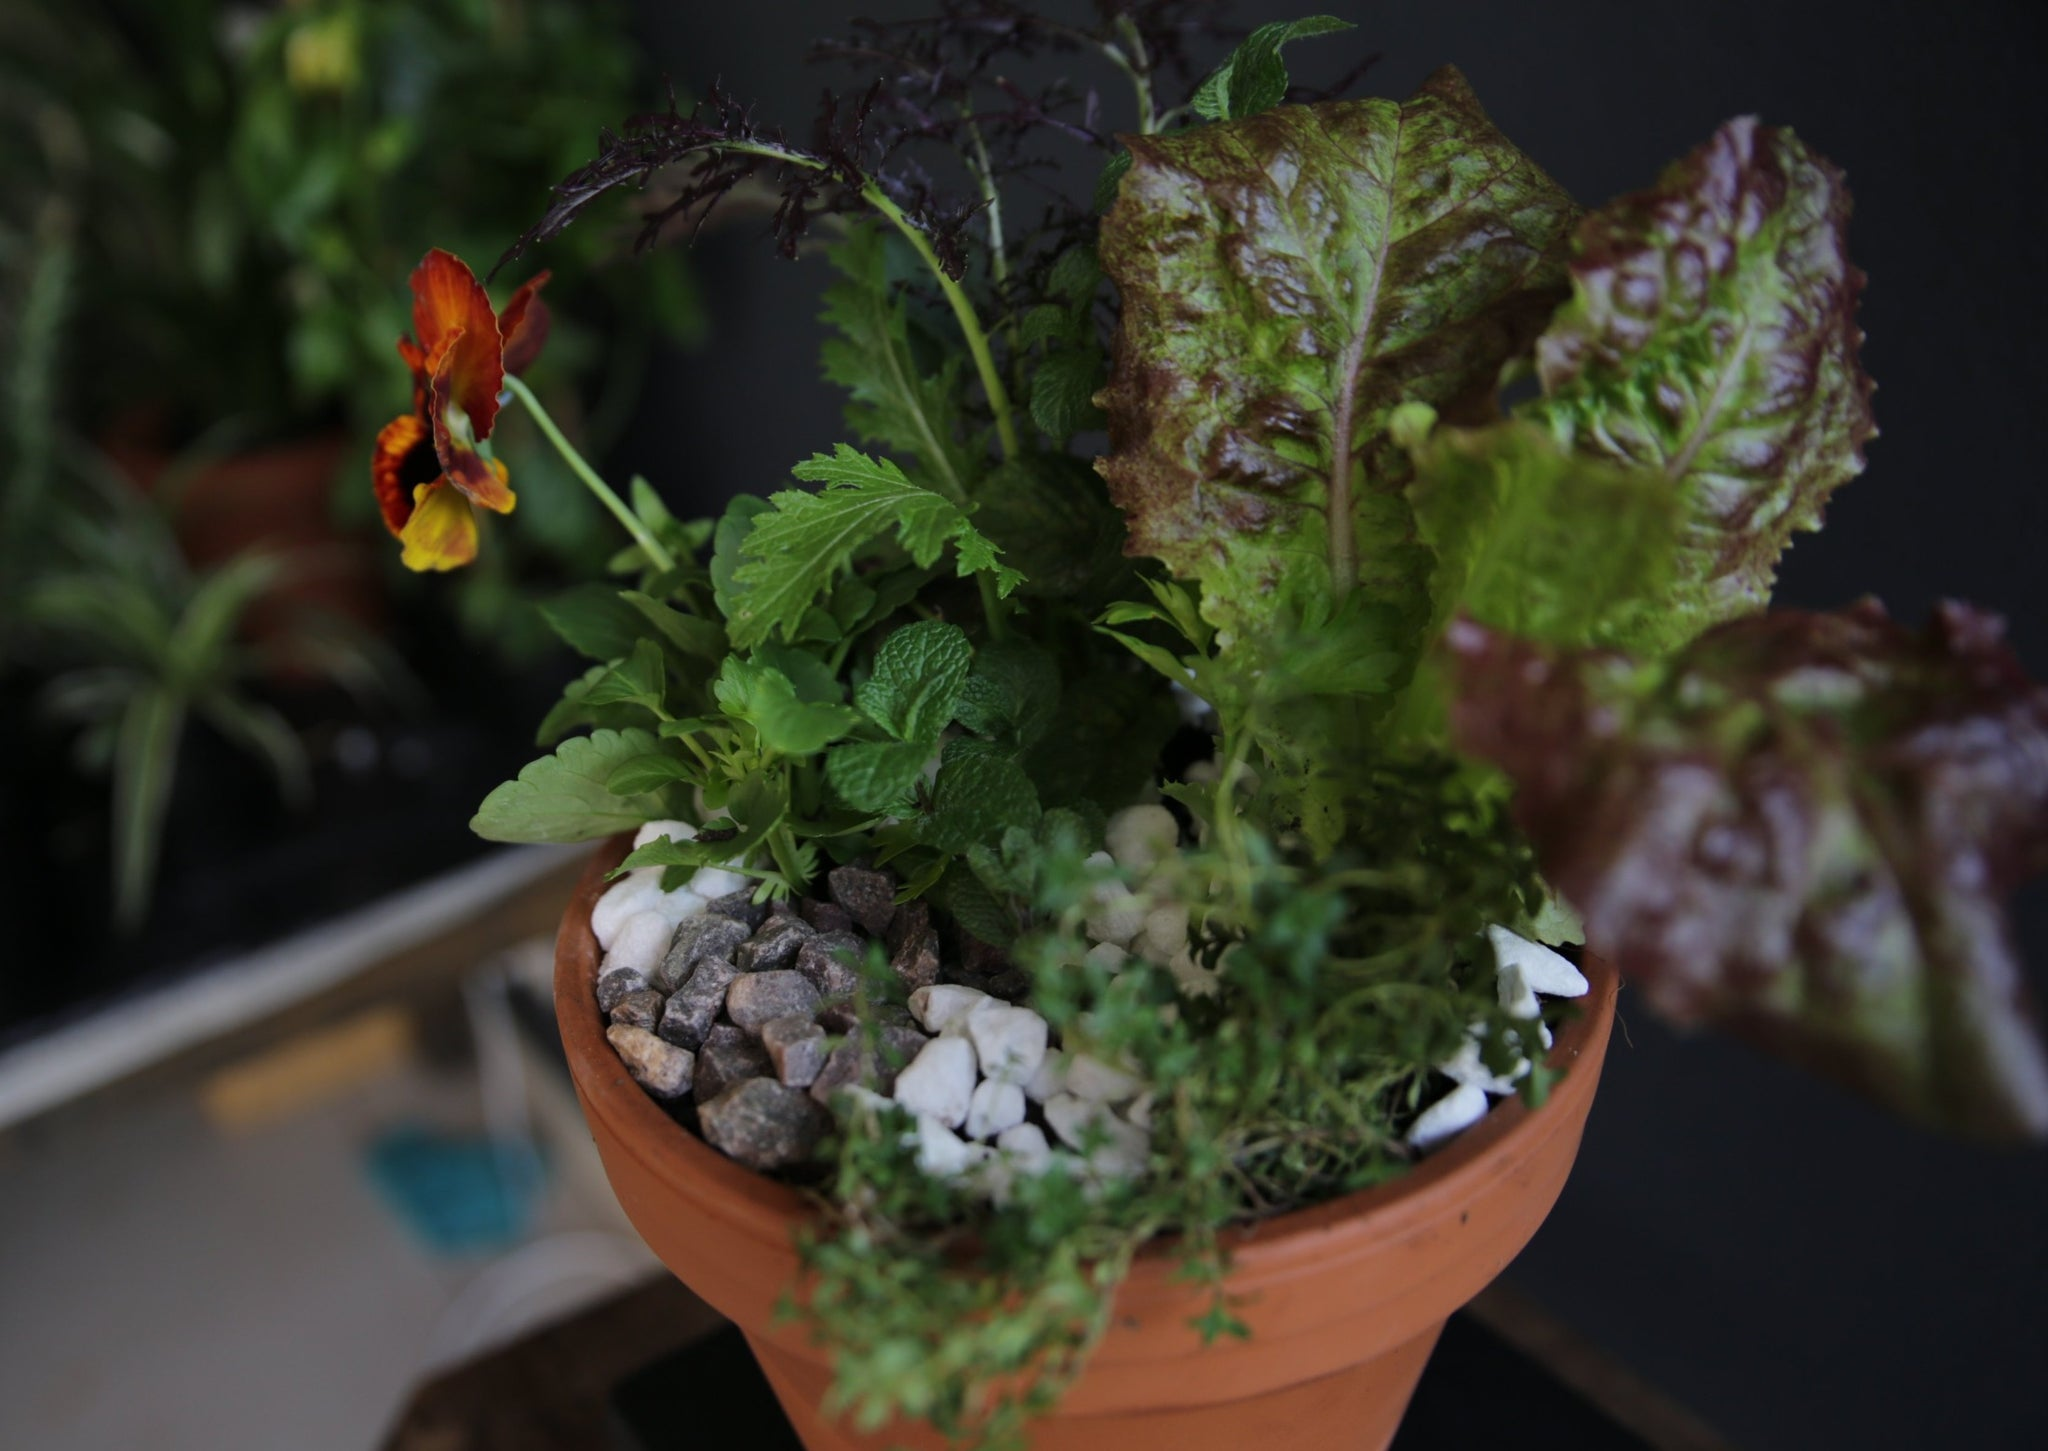 Mixed Kitchen Garden PotPlant with herbs, salad greens, edible flowers